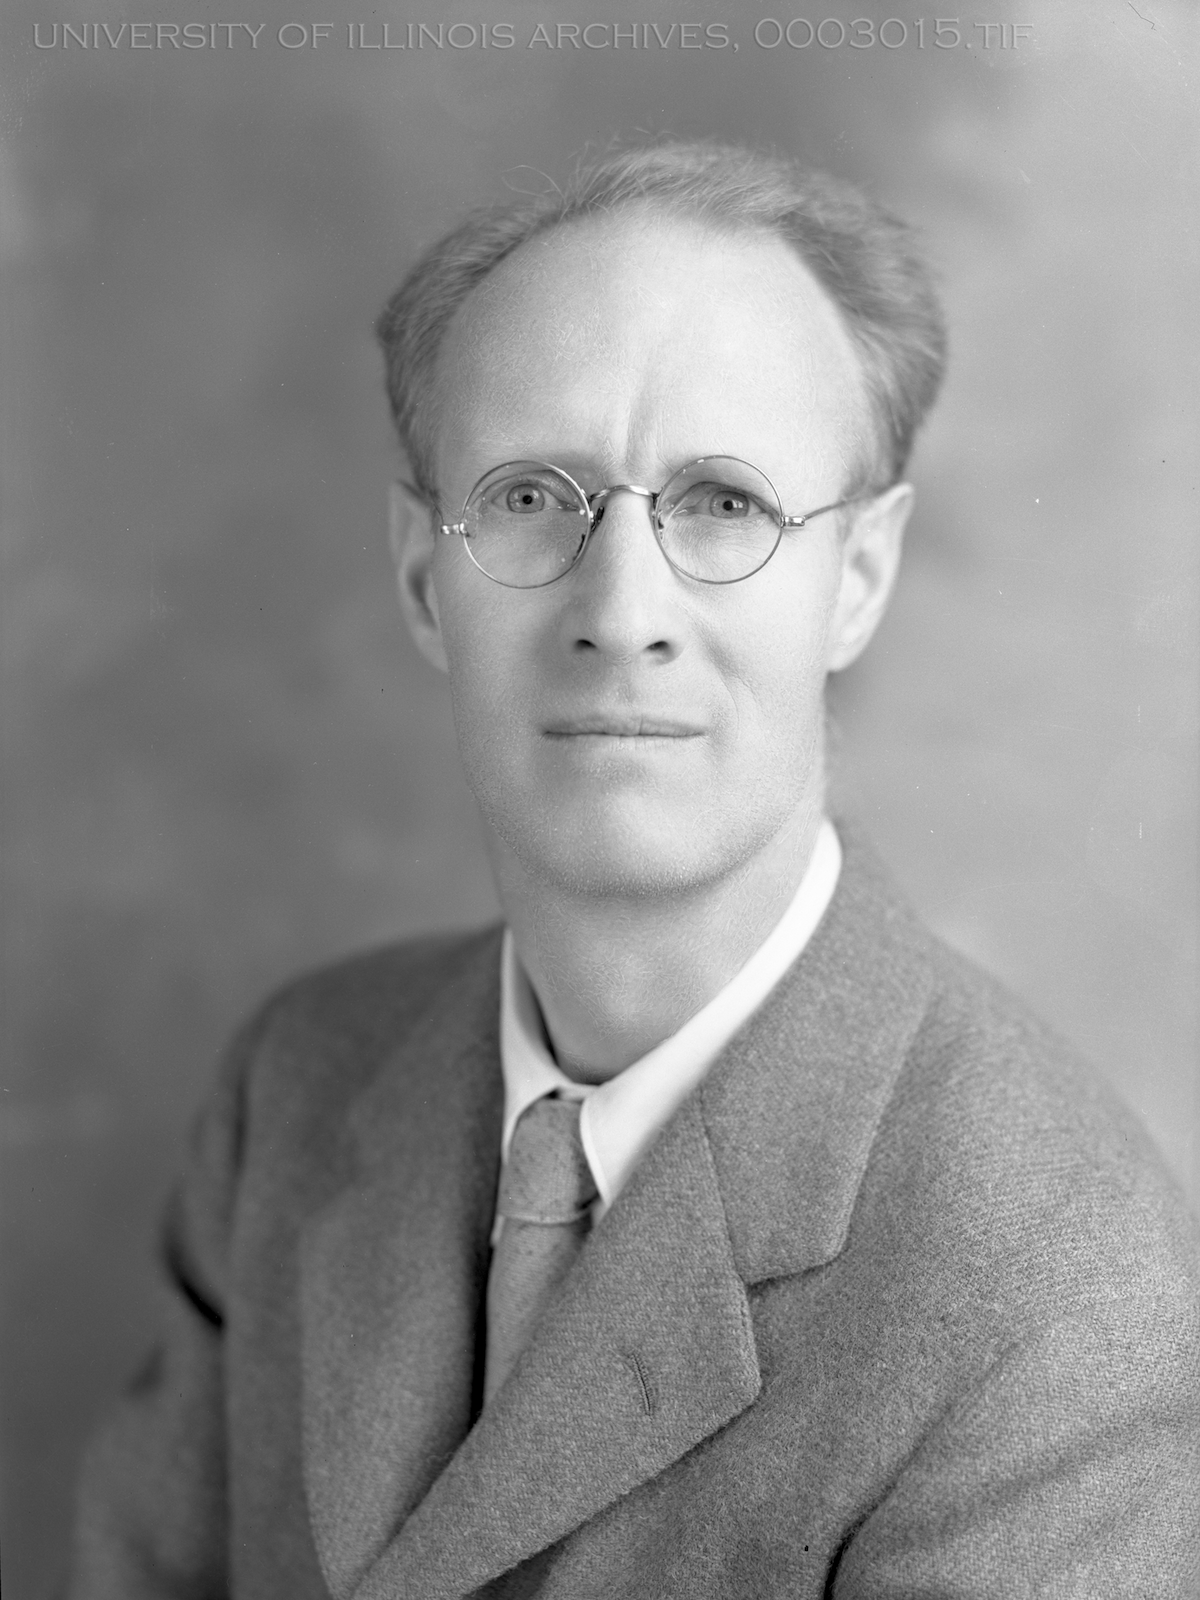 Robert Emerson, Courtesy of the University of Illinois Archives